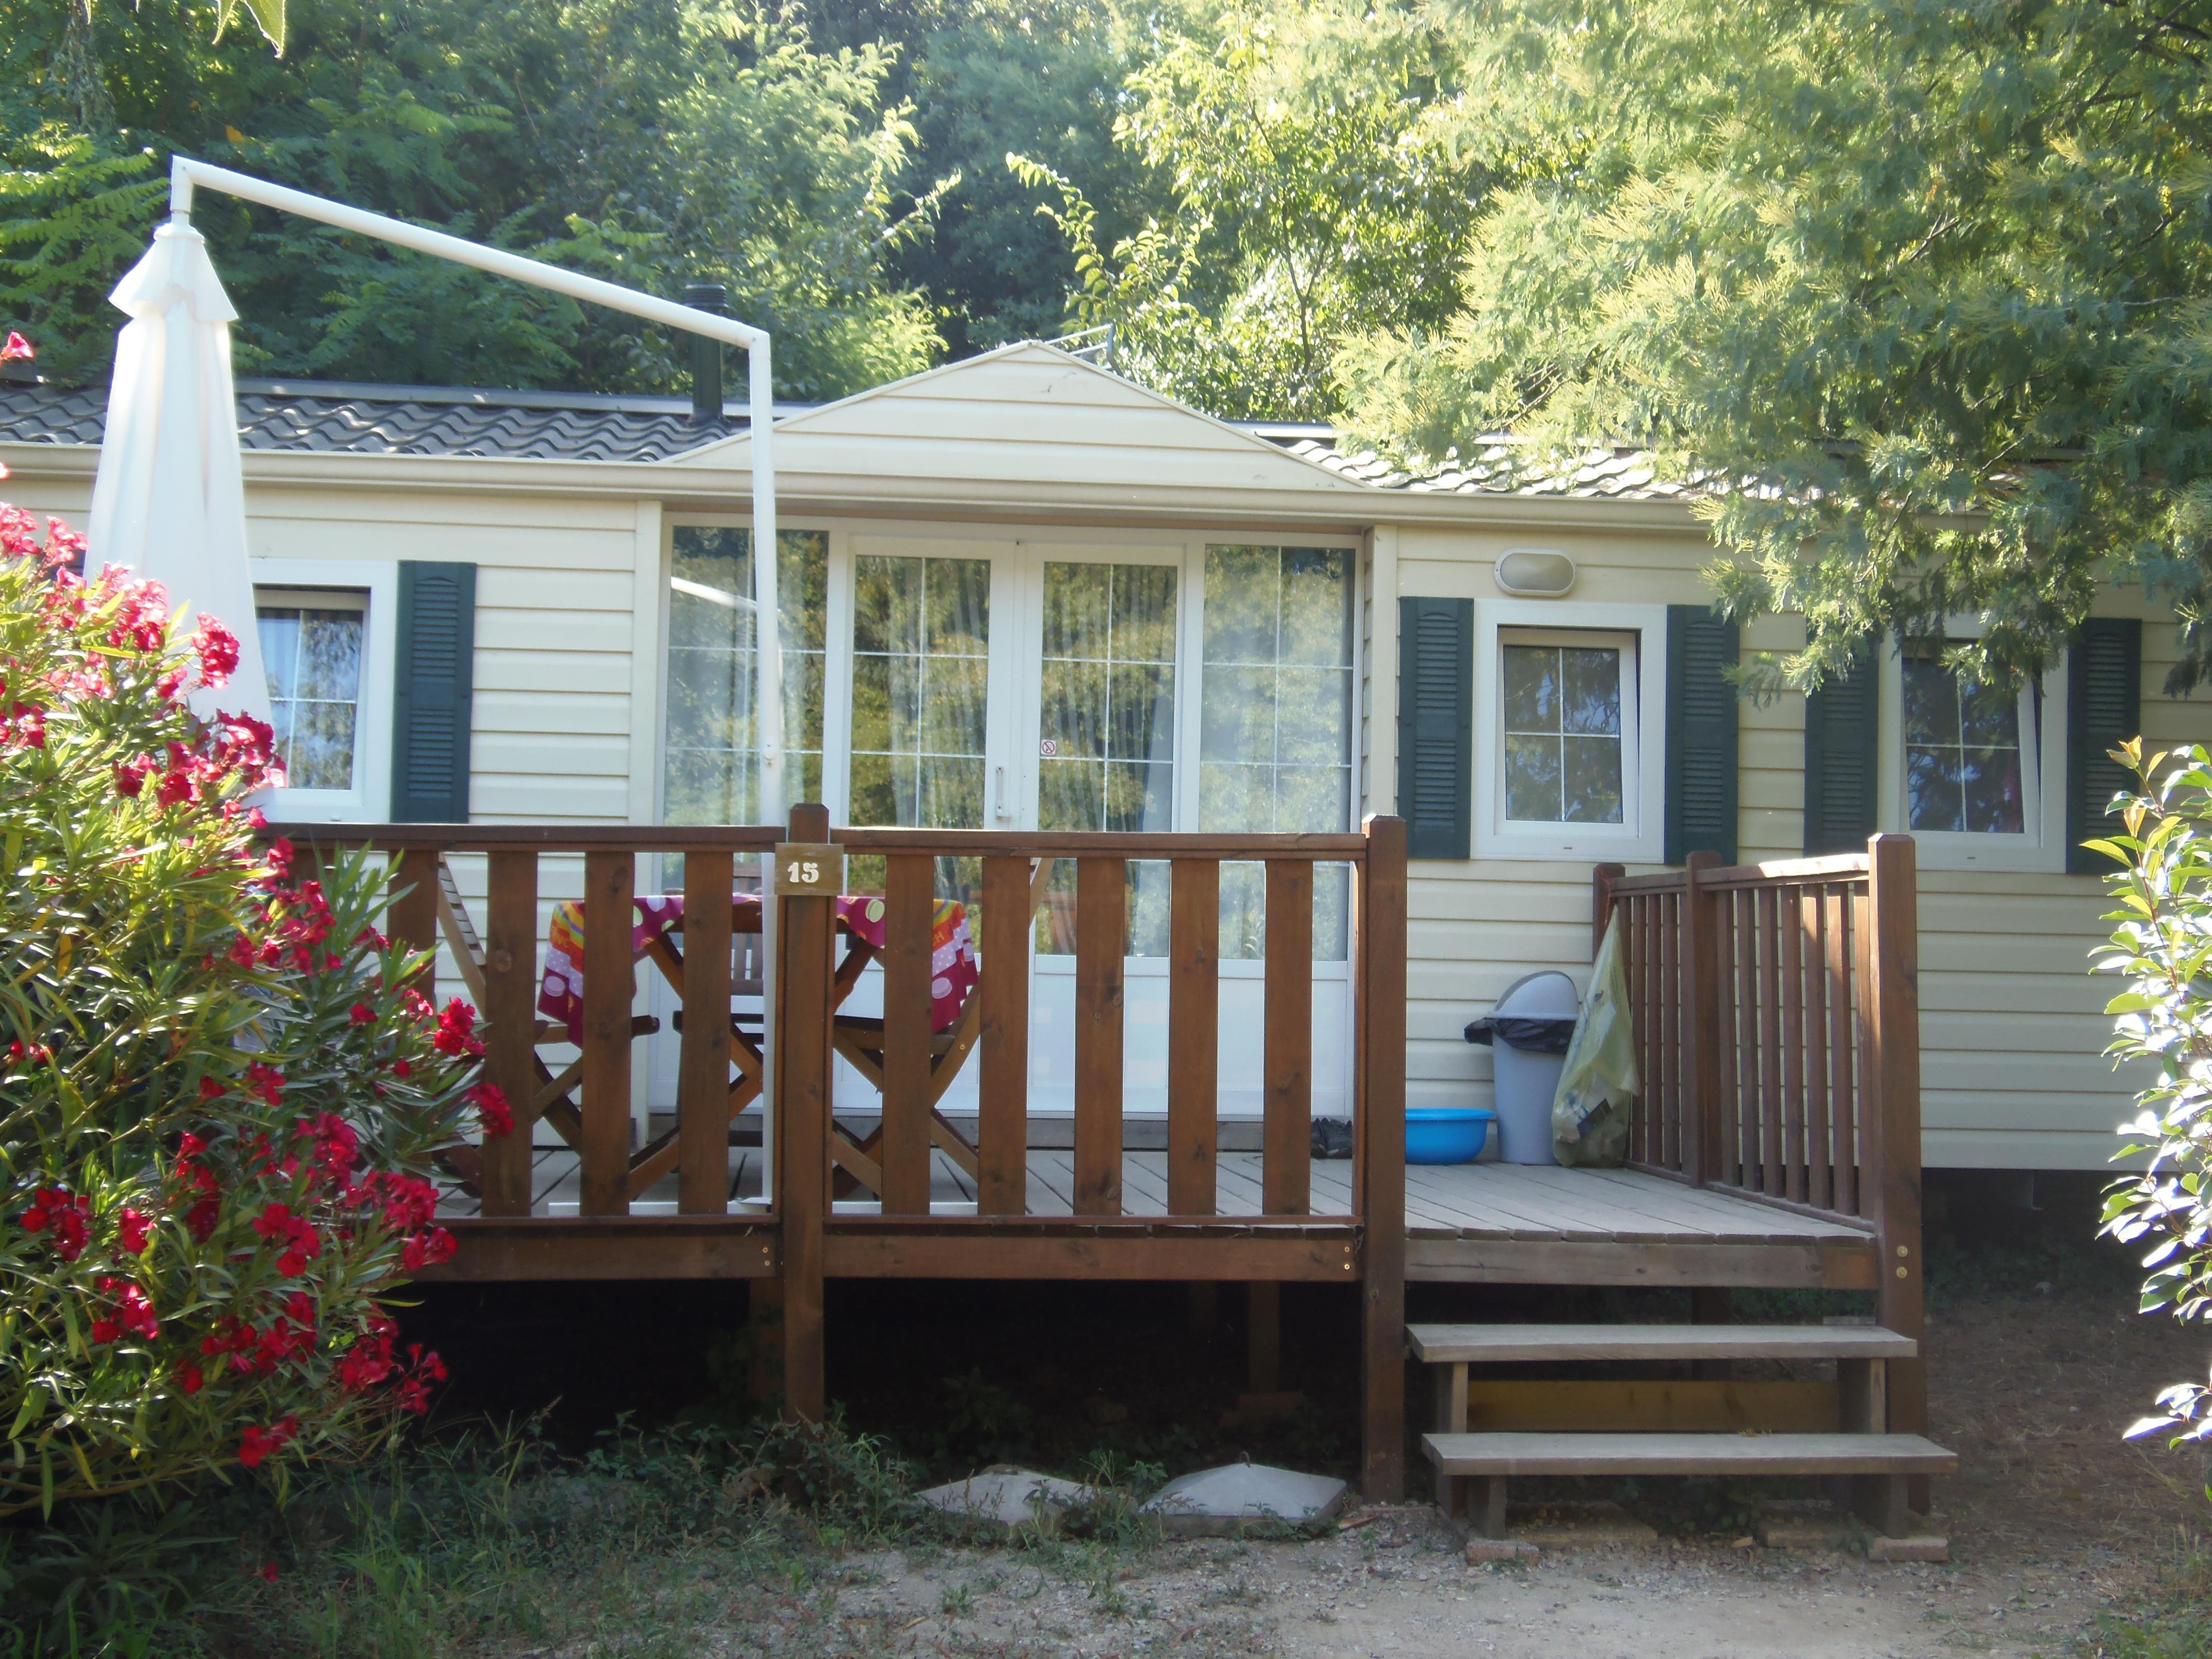 Mobil-home les Lauriers Roses  32 m² - 3 chambres - terrasse 16 m²